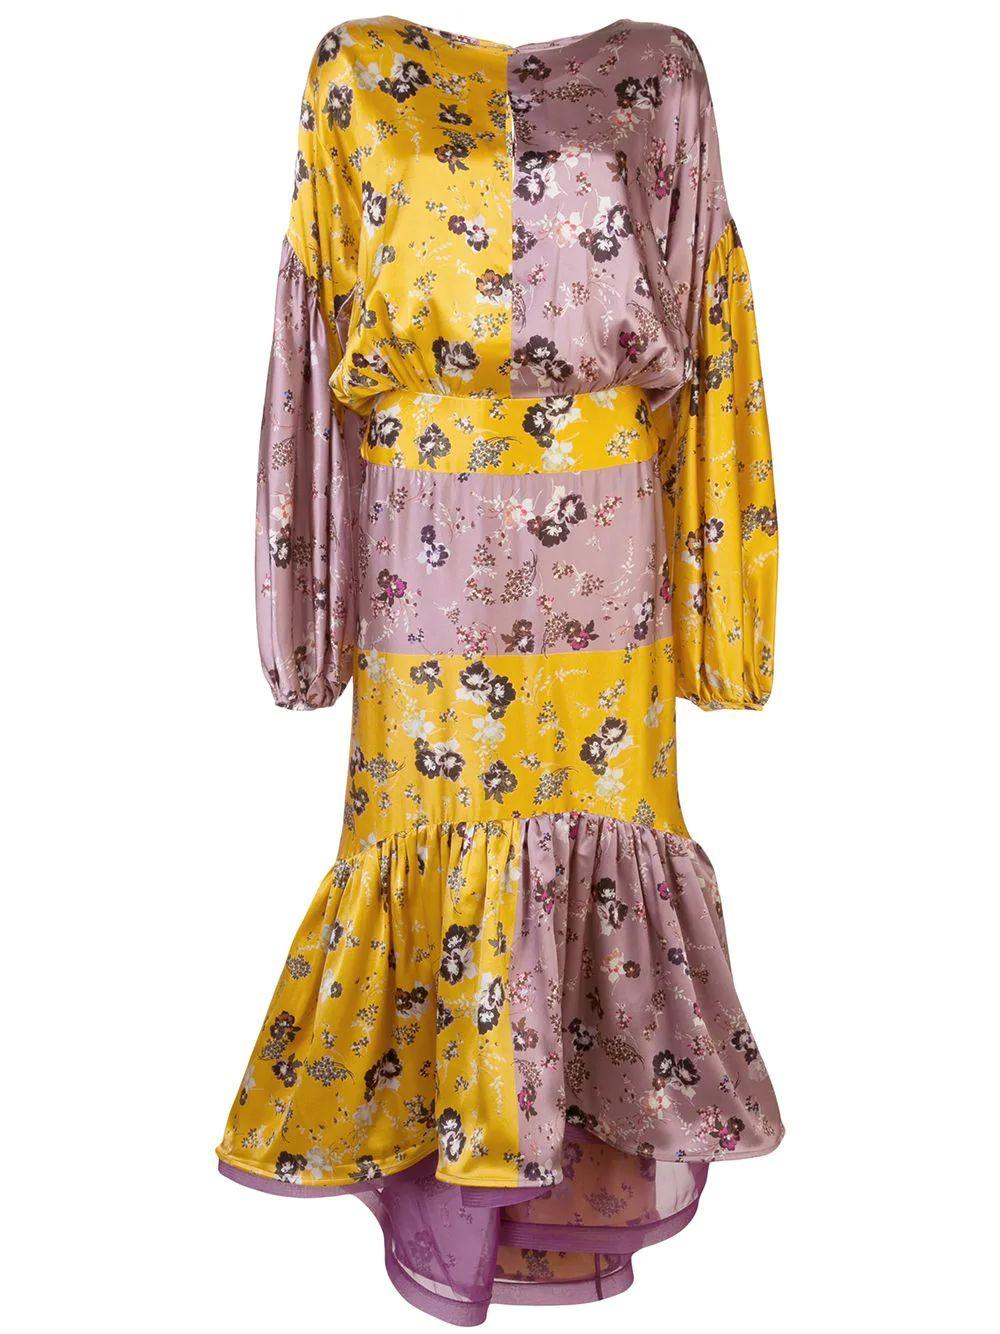 Long Sleeve Floral Patchwork Dress Item # DALIT-DRESS